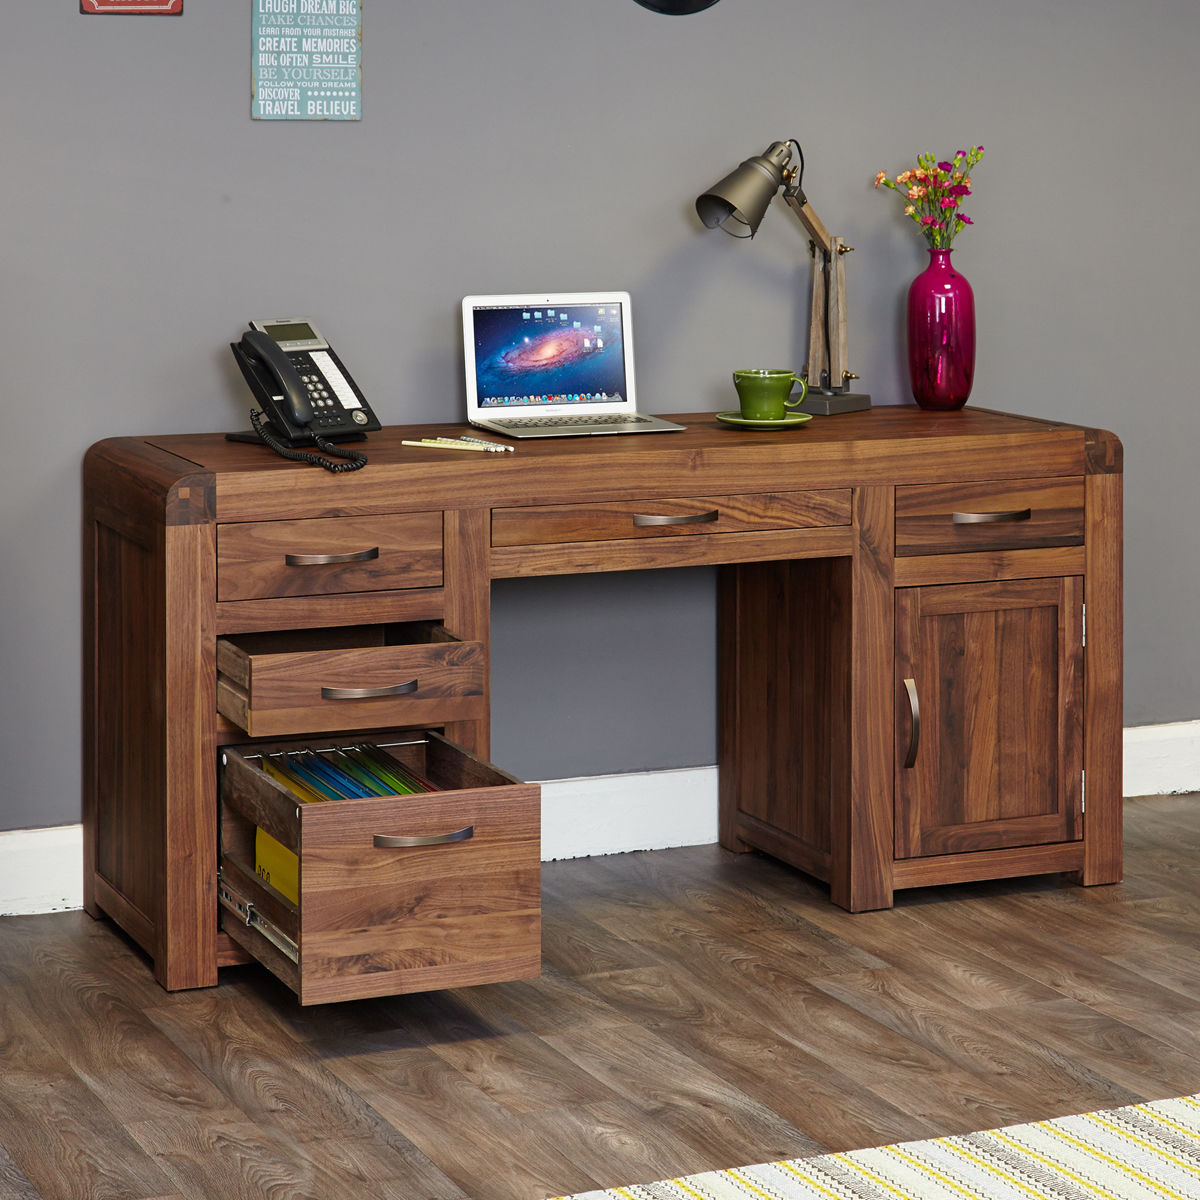 Twin Pine Auto >> Shiro Walnut Twin Pedestal Computer Desk Was £840.00 Now £775.00 - Wooden Furniture Store